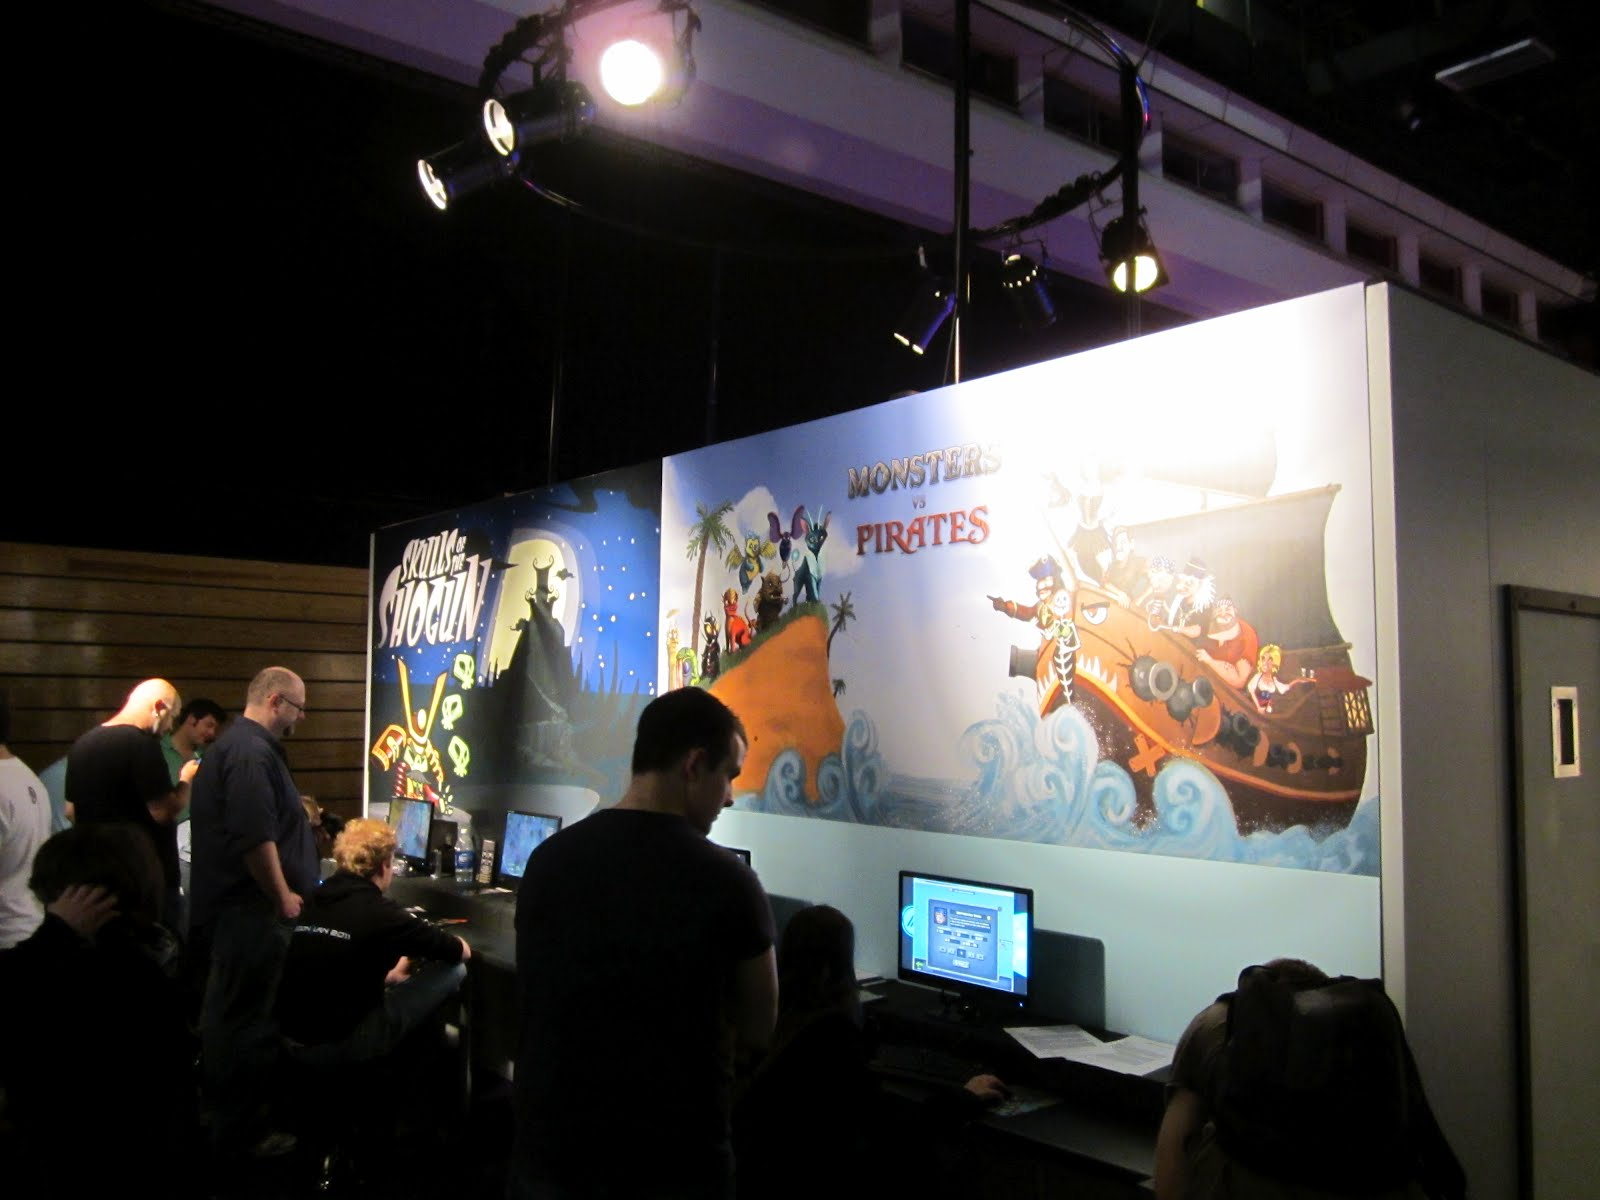 Rezzed Show - Jon - Monsters vs Pirates